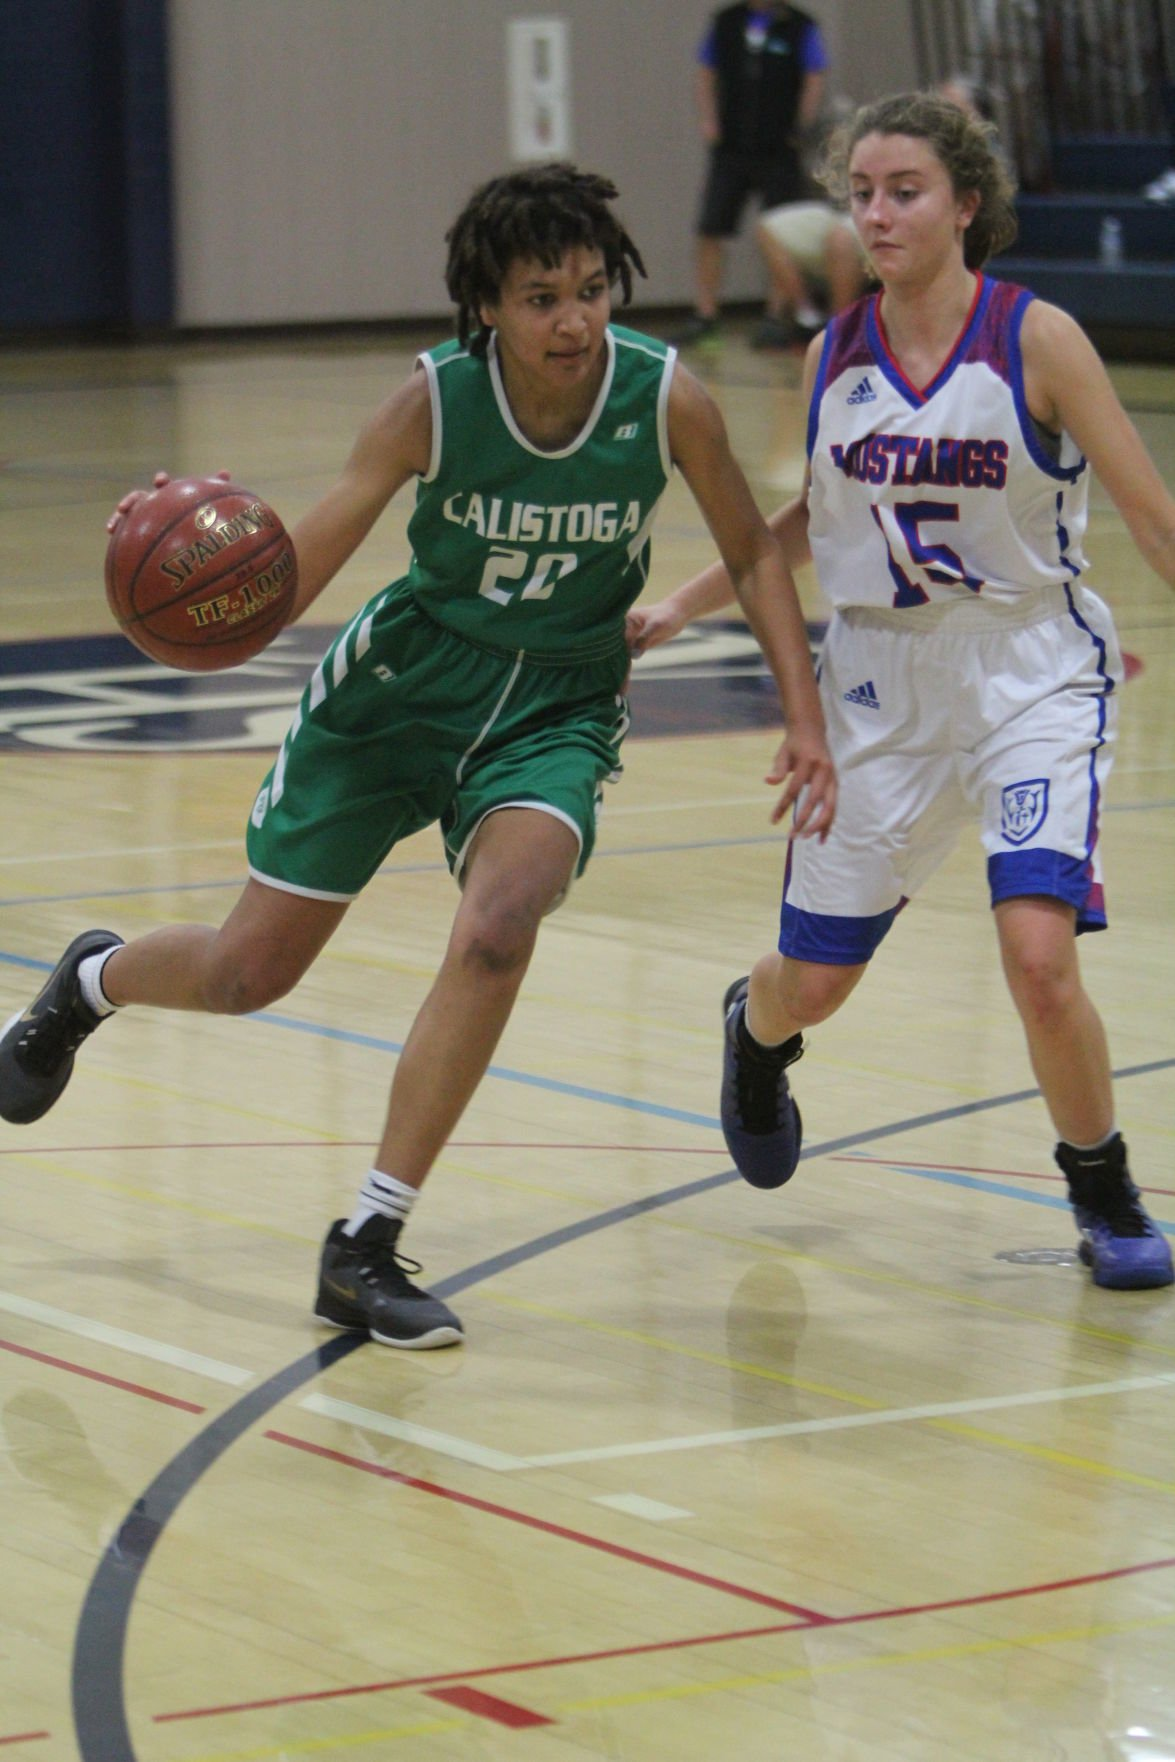 Calistoga girls basketball